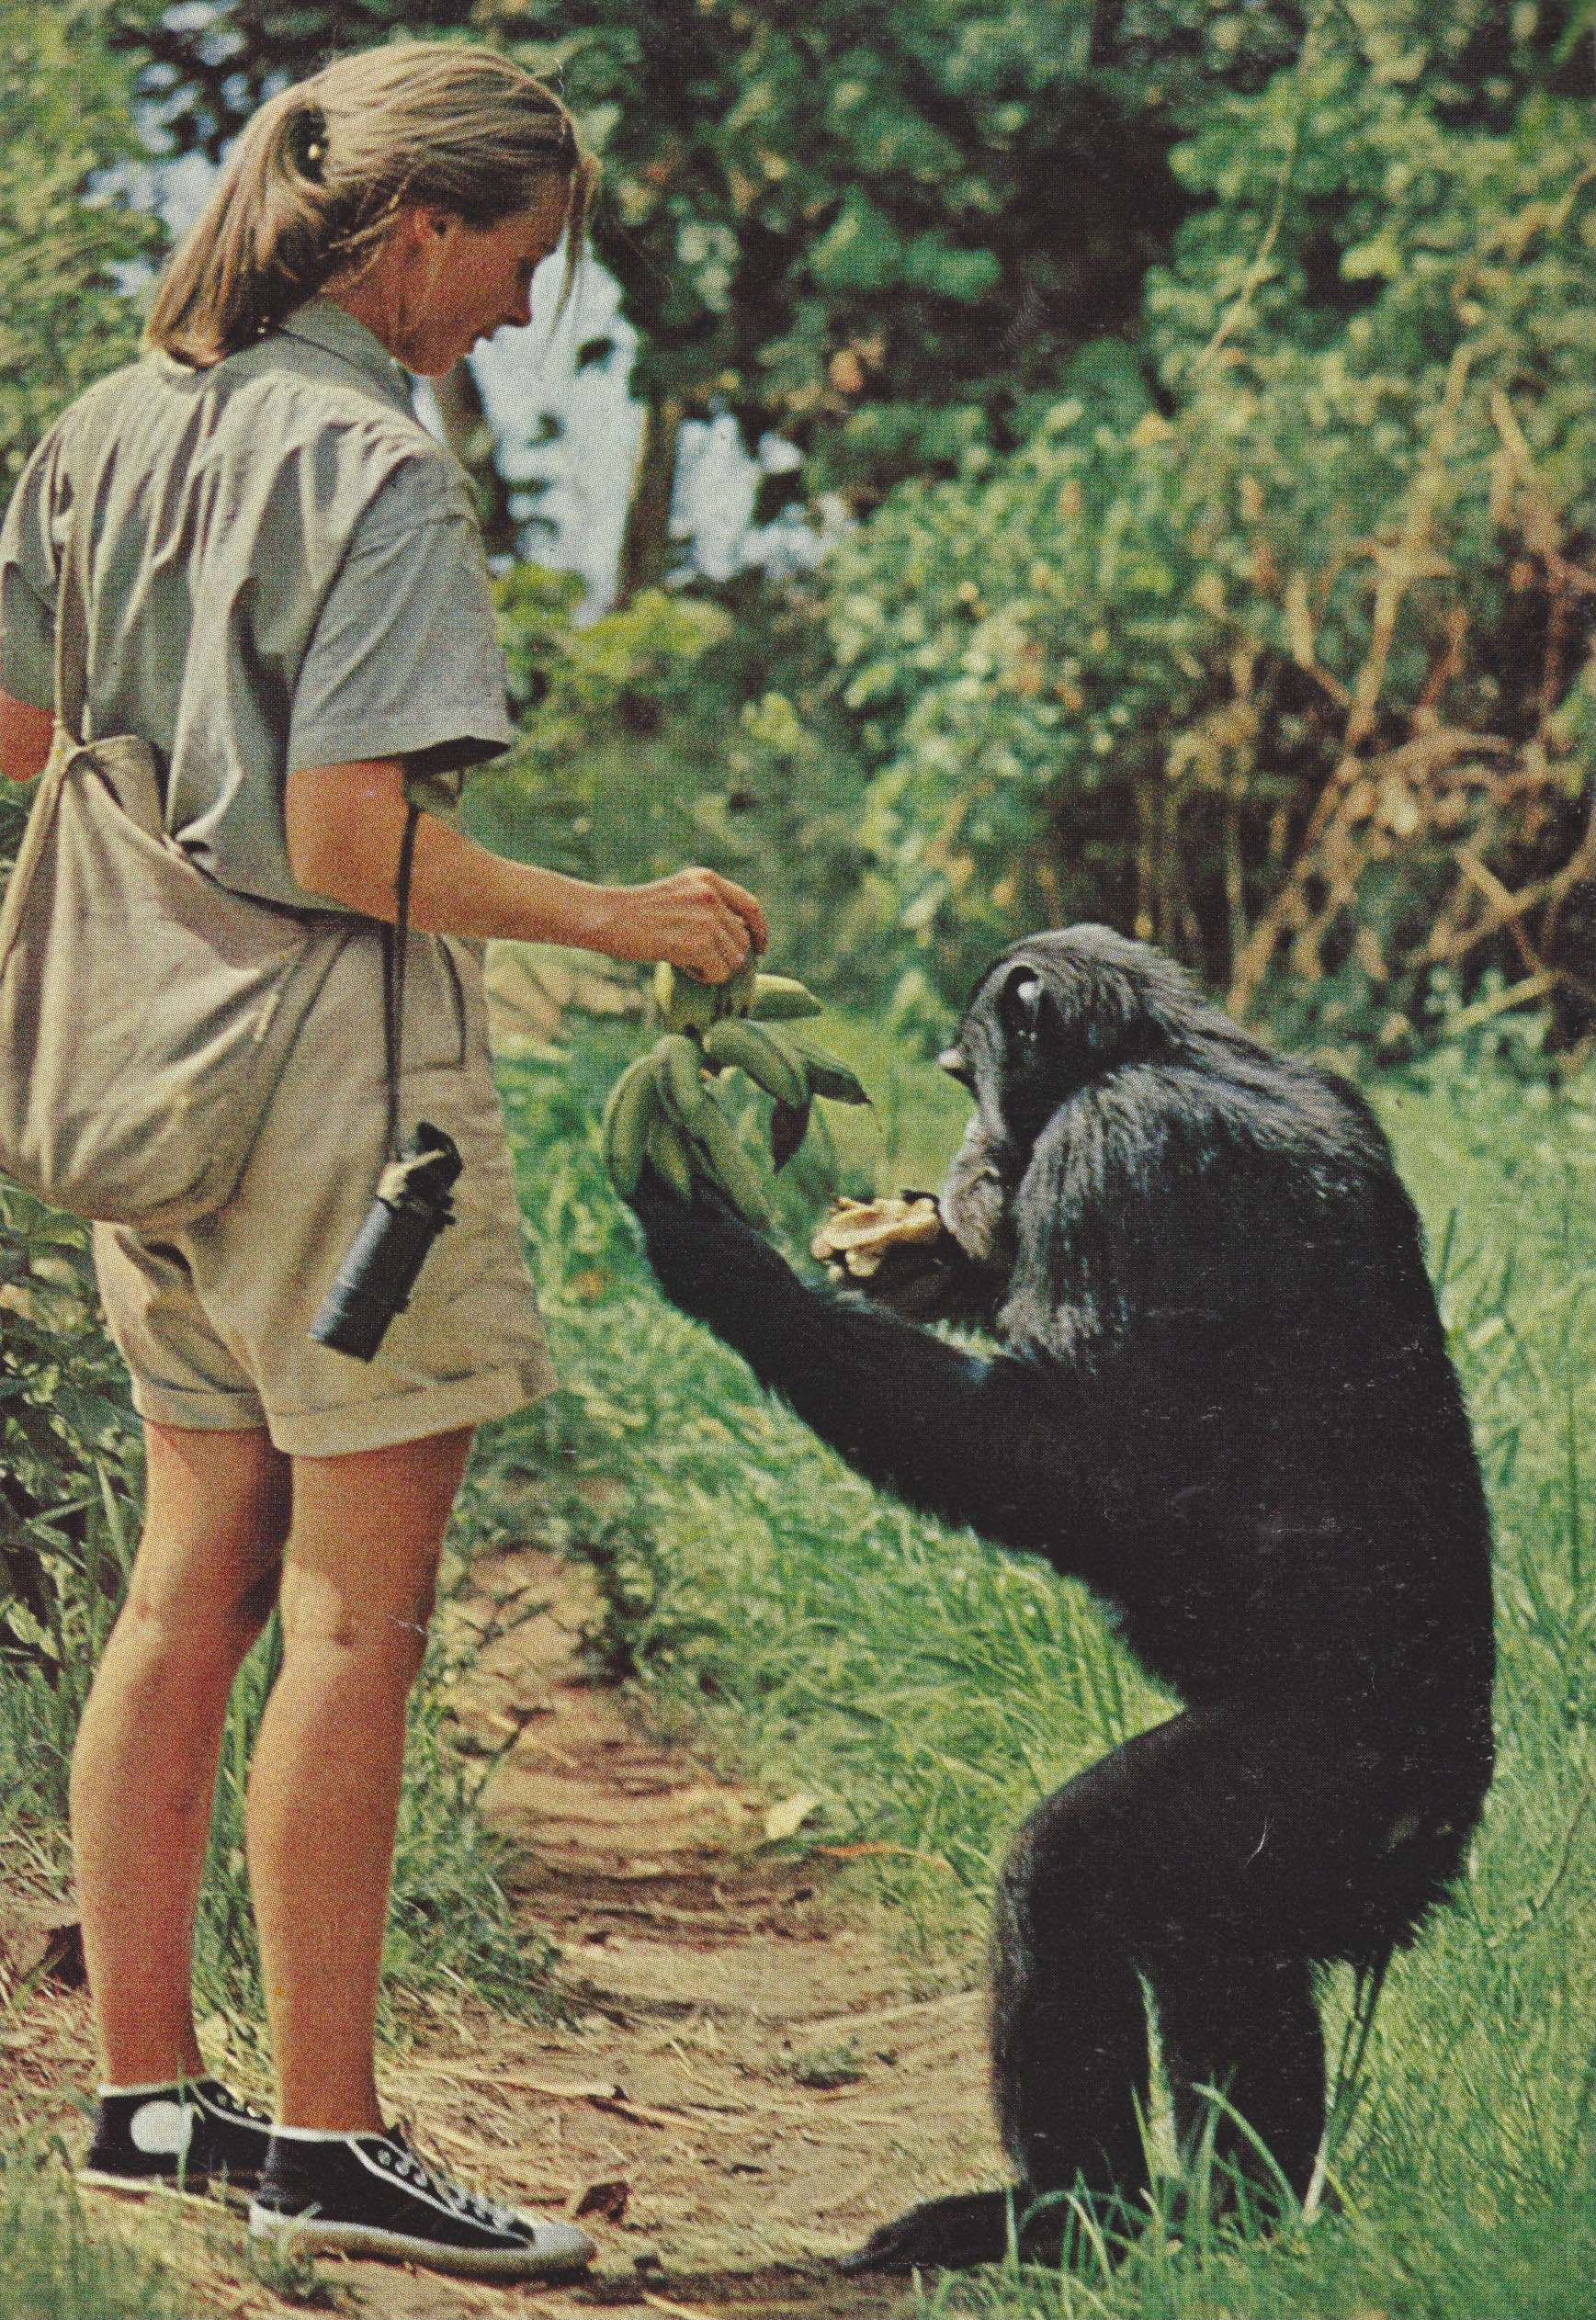 The caption for this photo by Baron Hugo van Lawick Jane walks along with chimp, David Graybeard. Noted is that she carries a whistle in her pocket to summon searchers in case of accident.